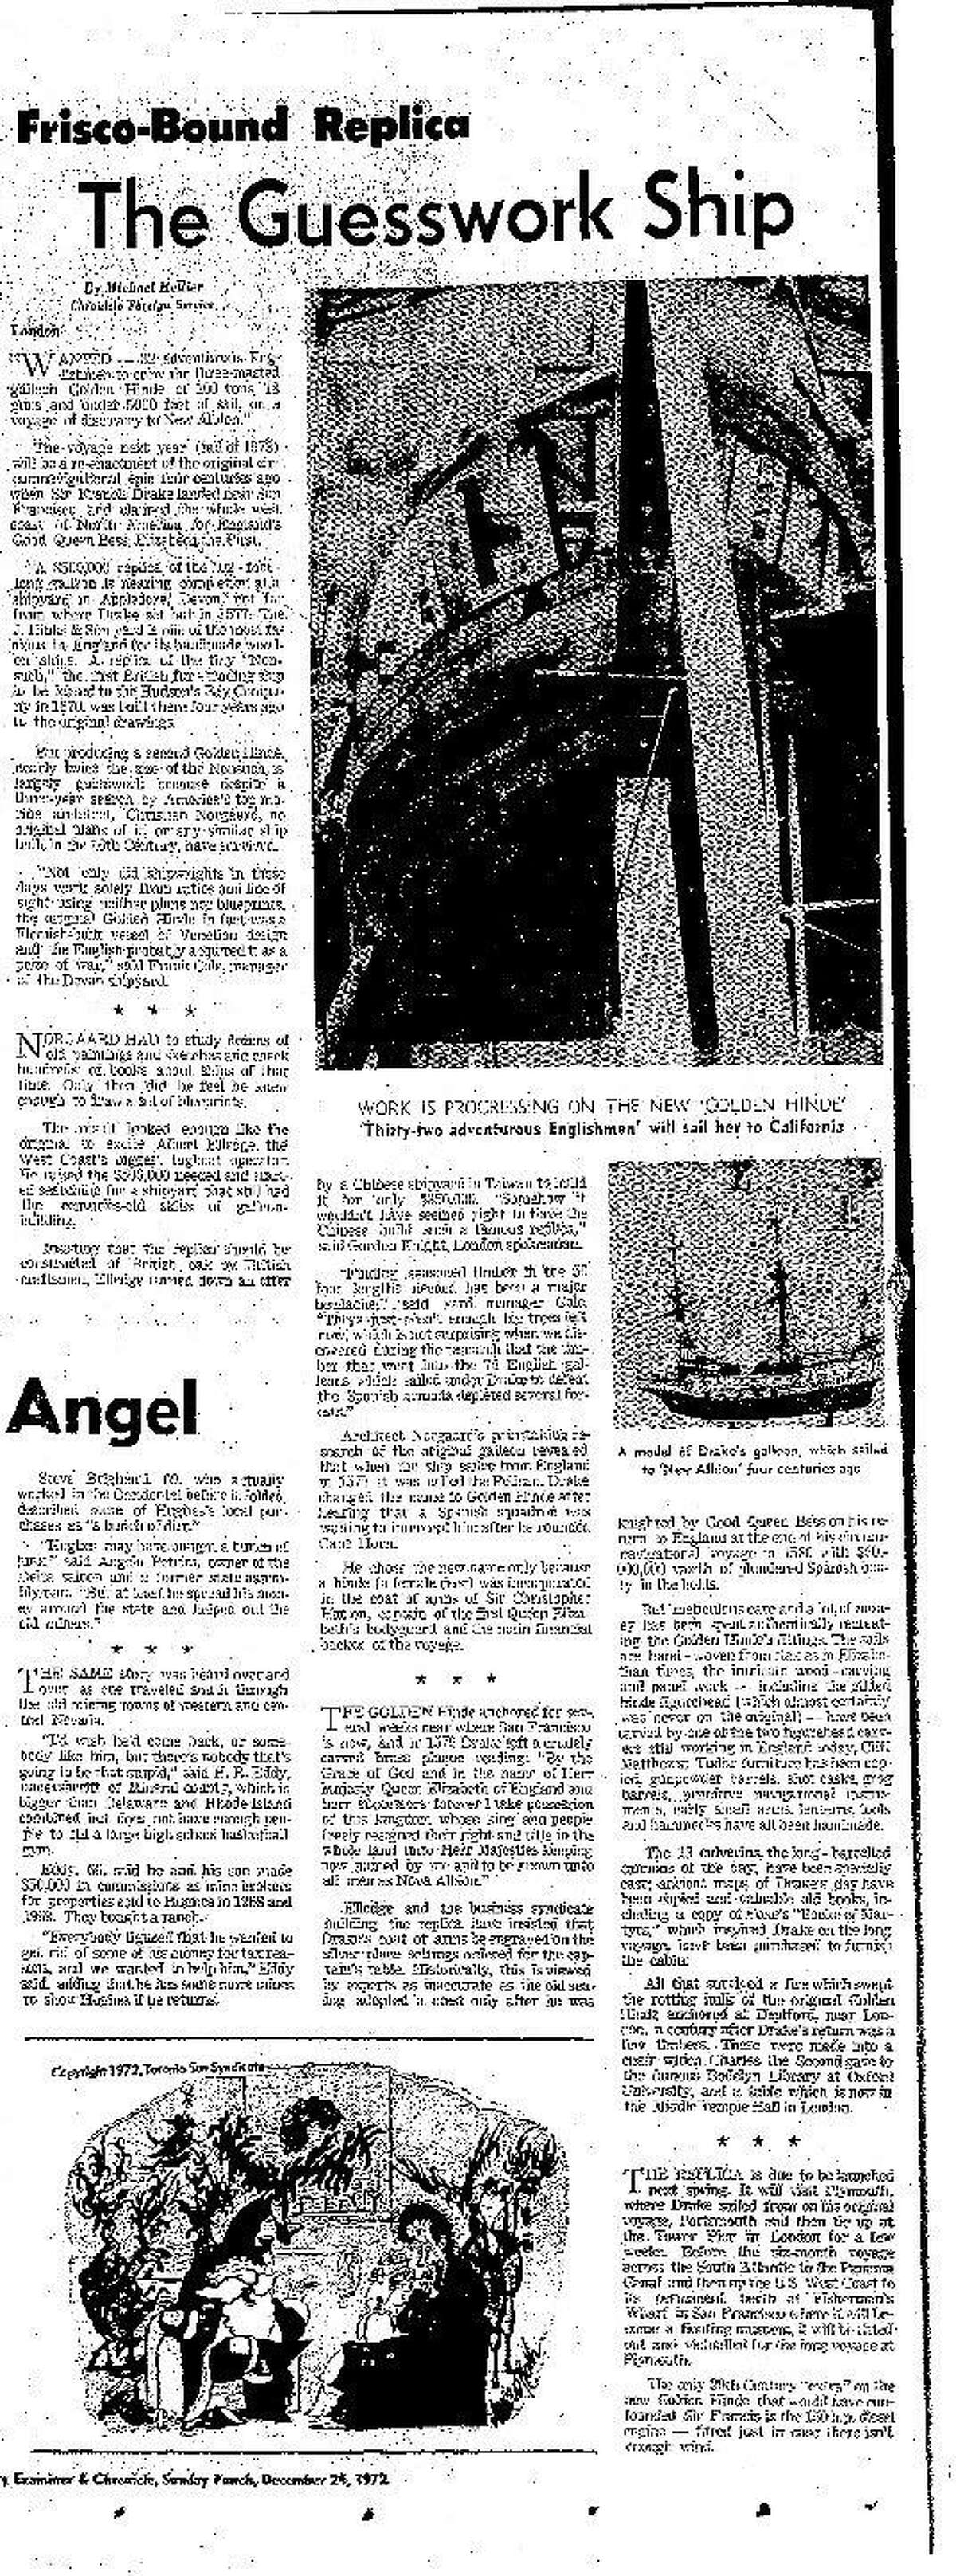 The December 12, 1972 Chronicle Sunday Punch as the Golden Hinde II prepares to set sail for San Francisco Bay